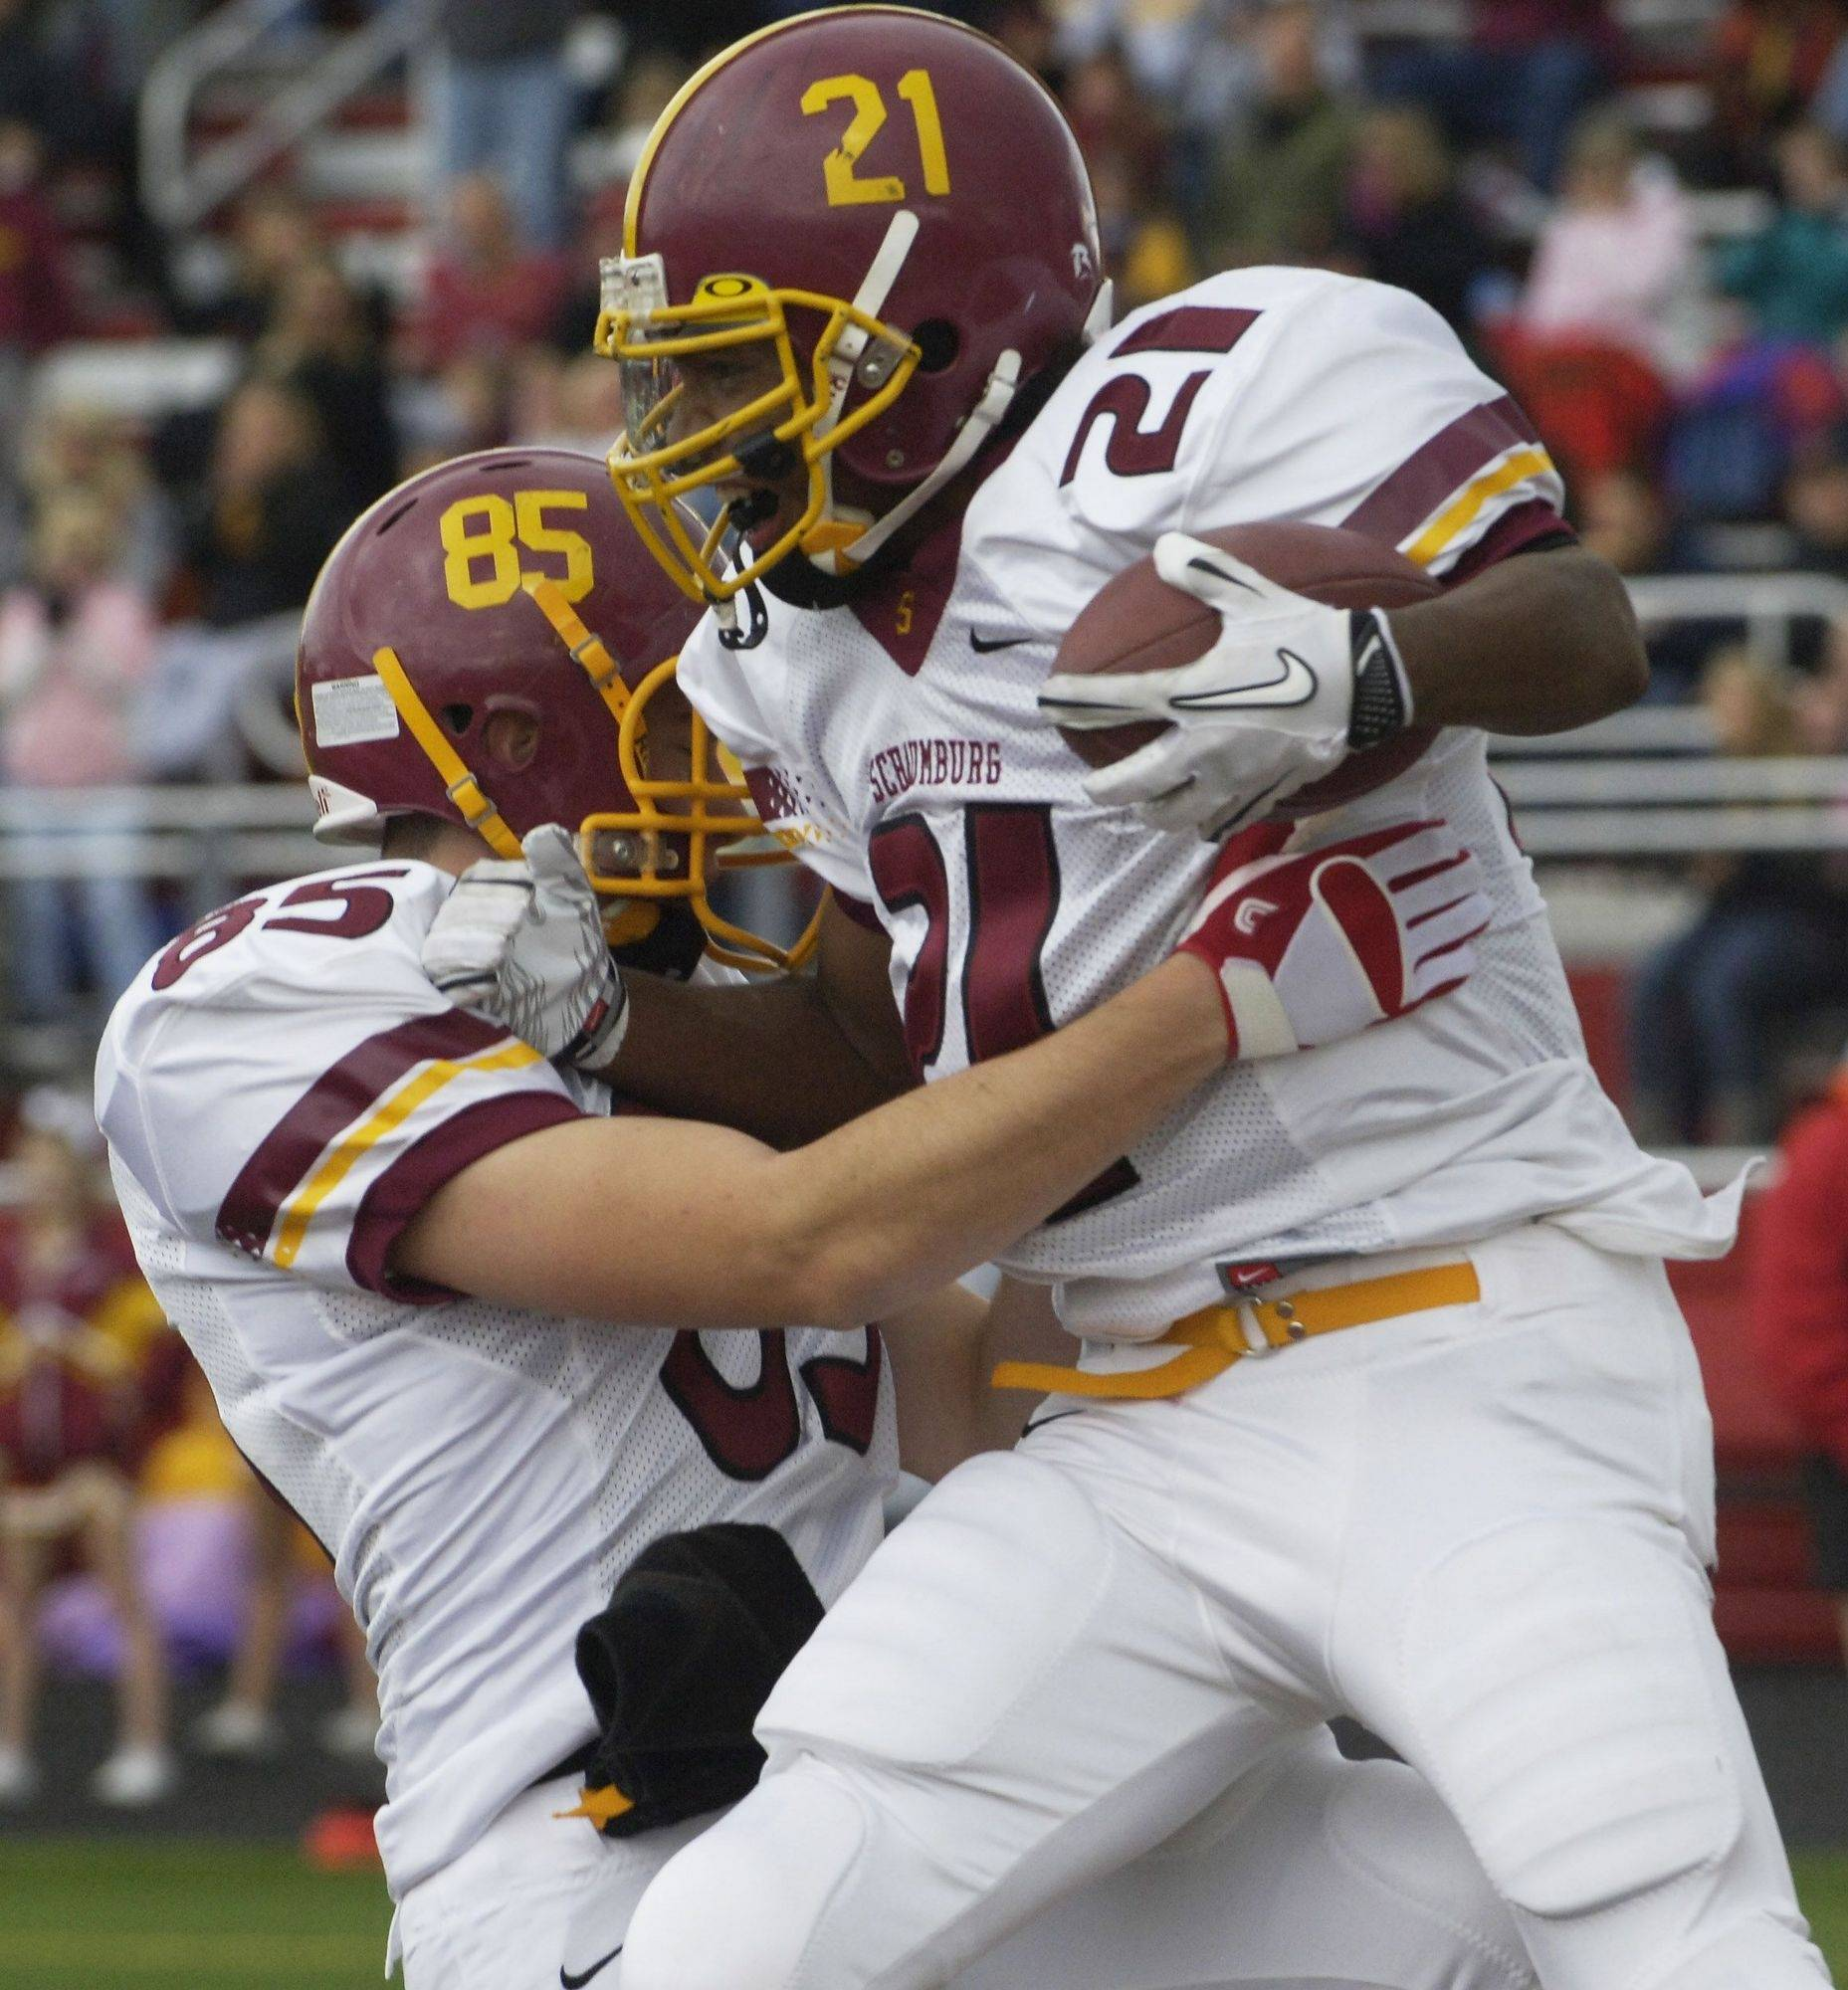 Schaumburg's Shepard Little, right, celebrates his touchdown with teammate Matt Bolger during Saturday's game at Barrington.